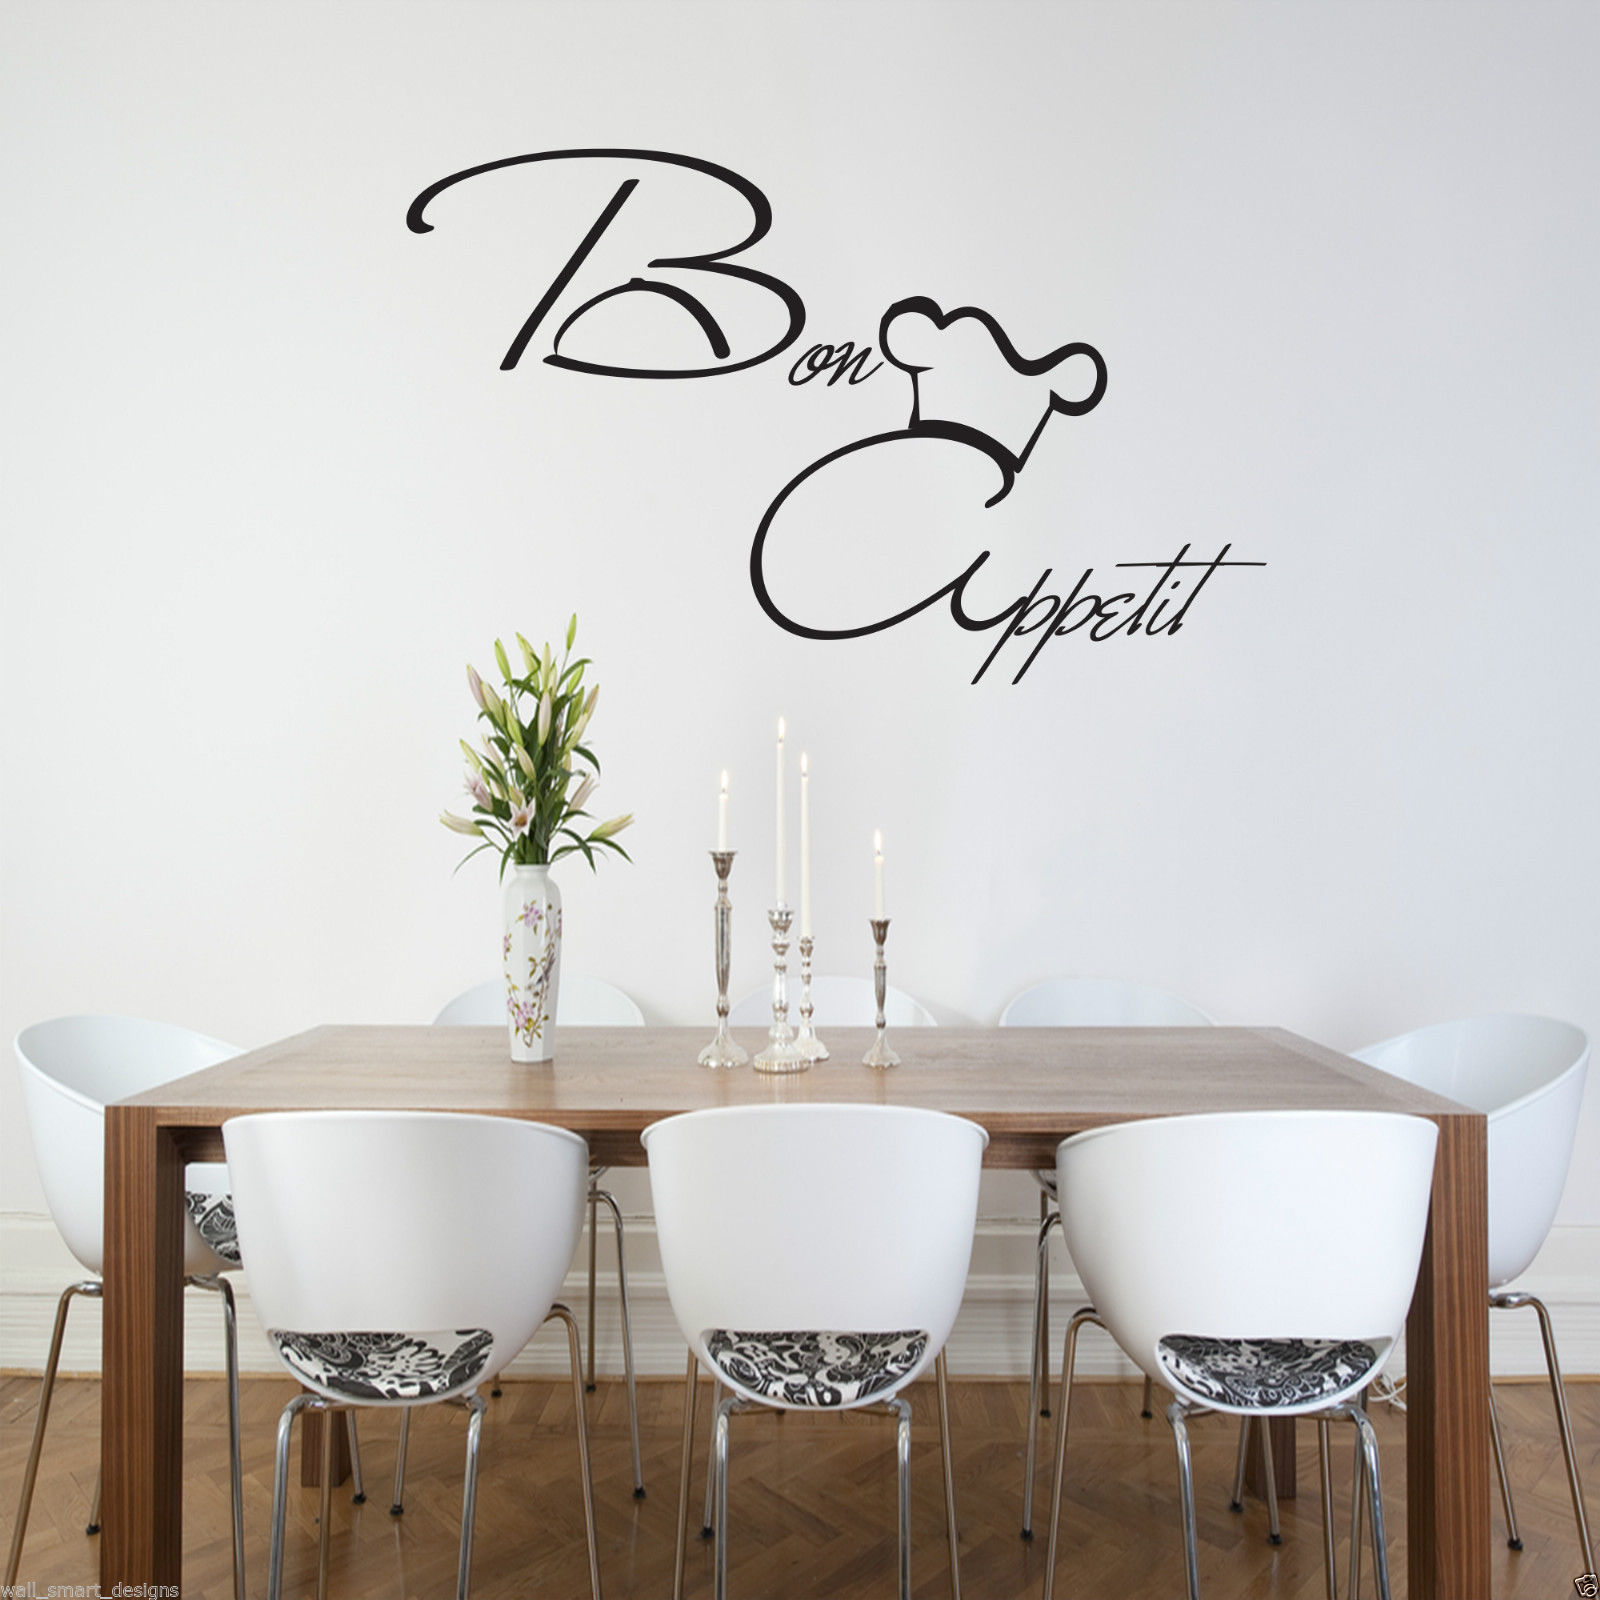 Wall art kitchen quotes - Bon Appetit Wall Art Sticker Kitchen Vinyl Quote Decal Mural Stencil Transfer